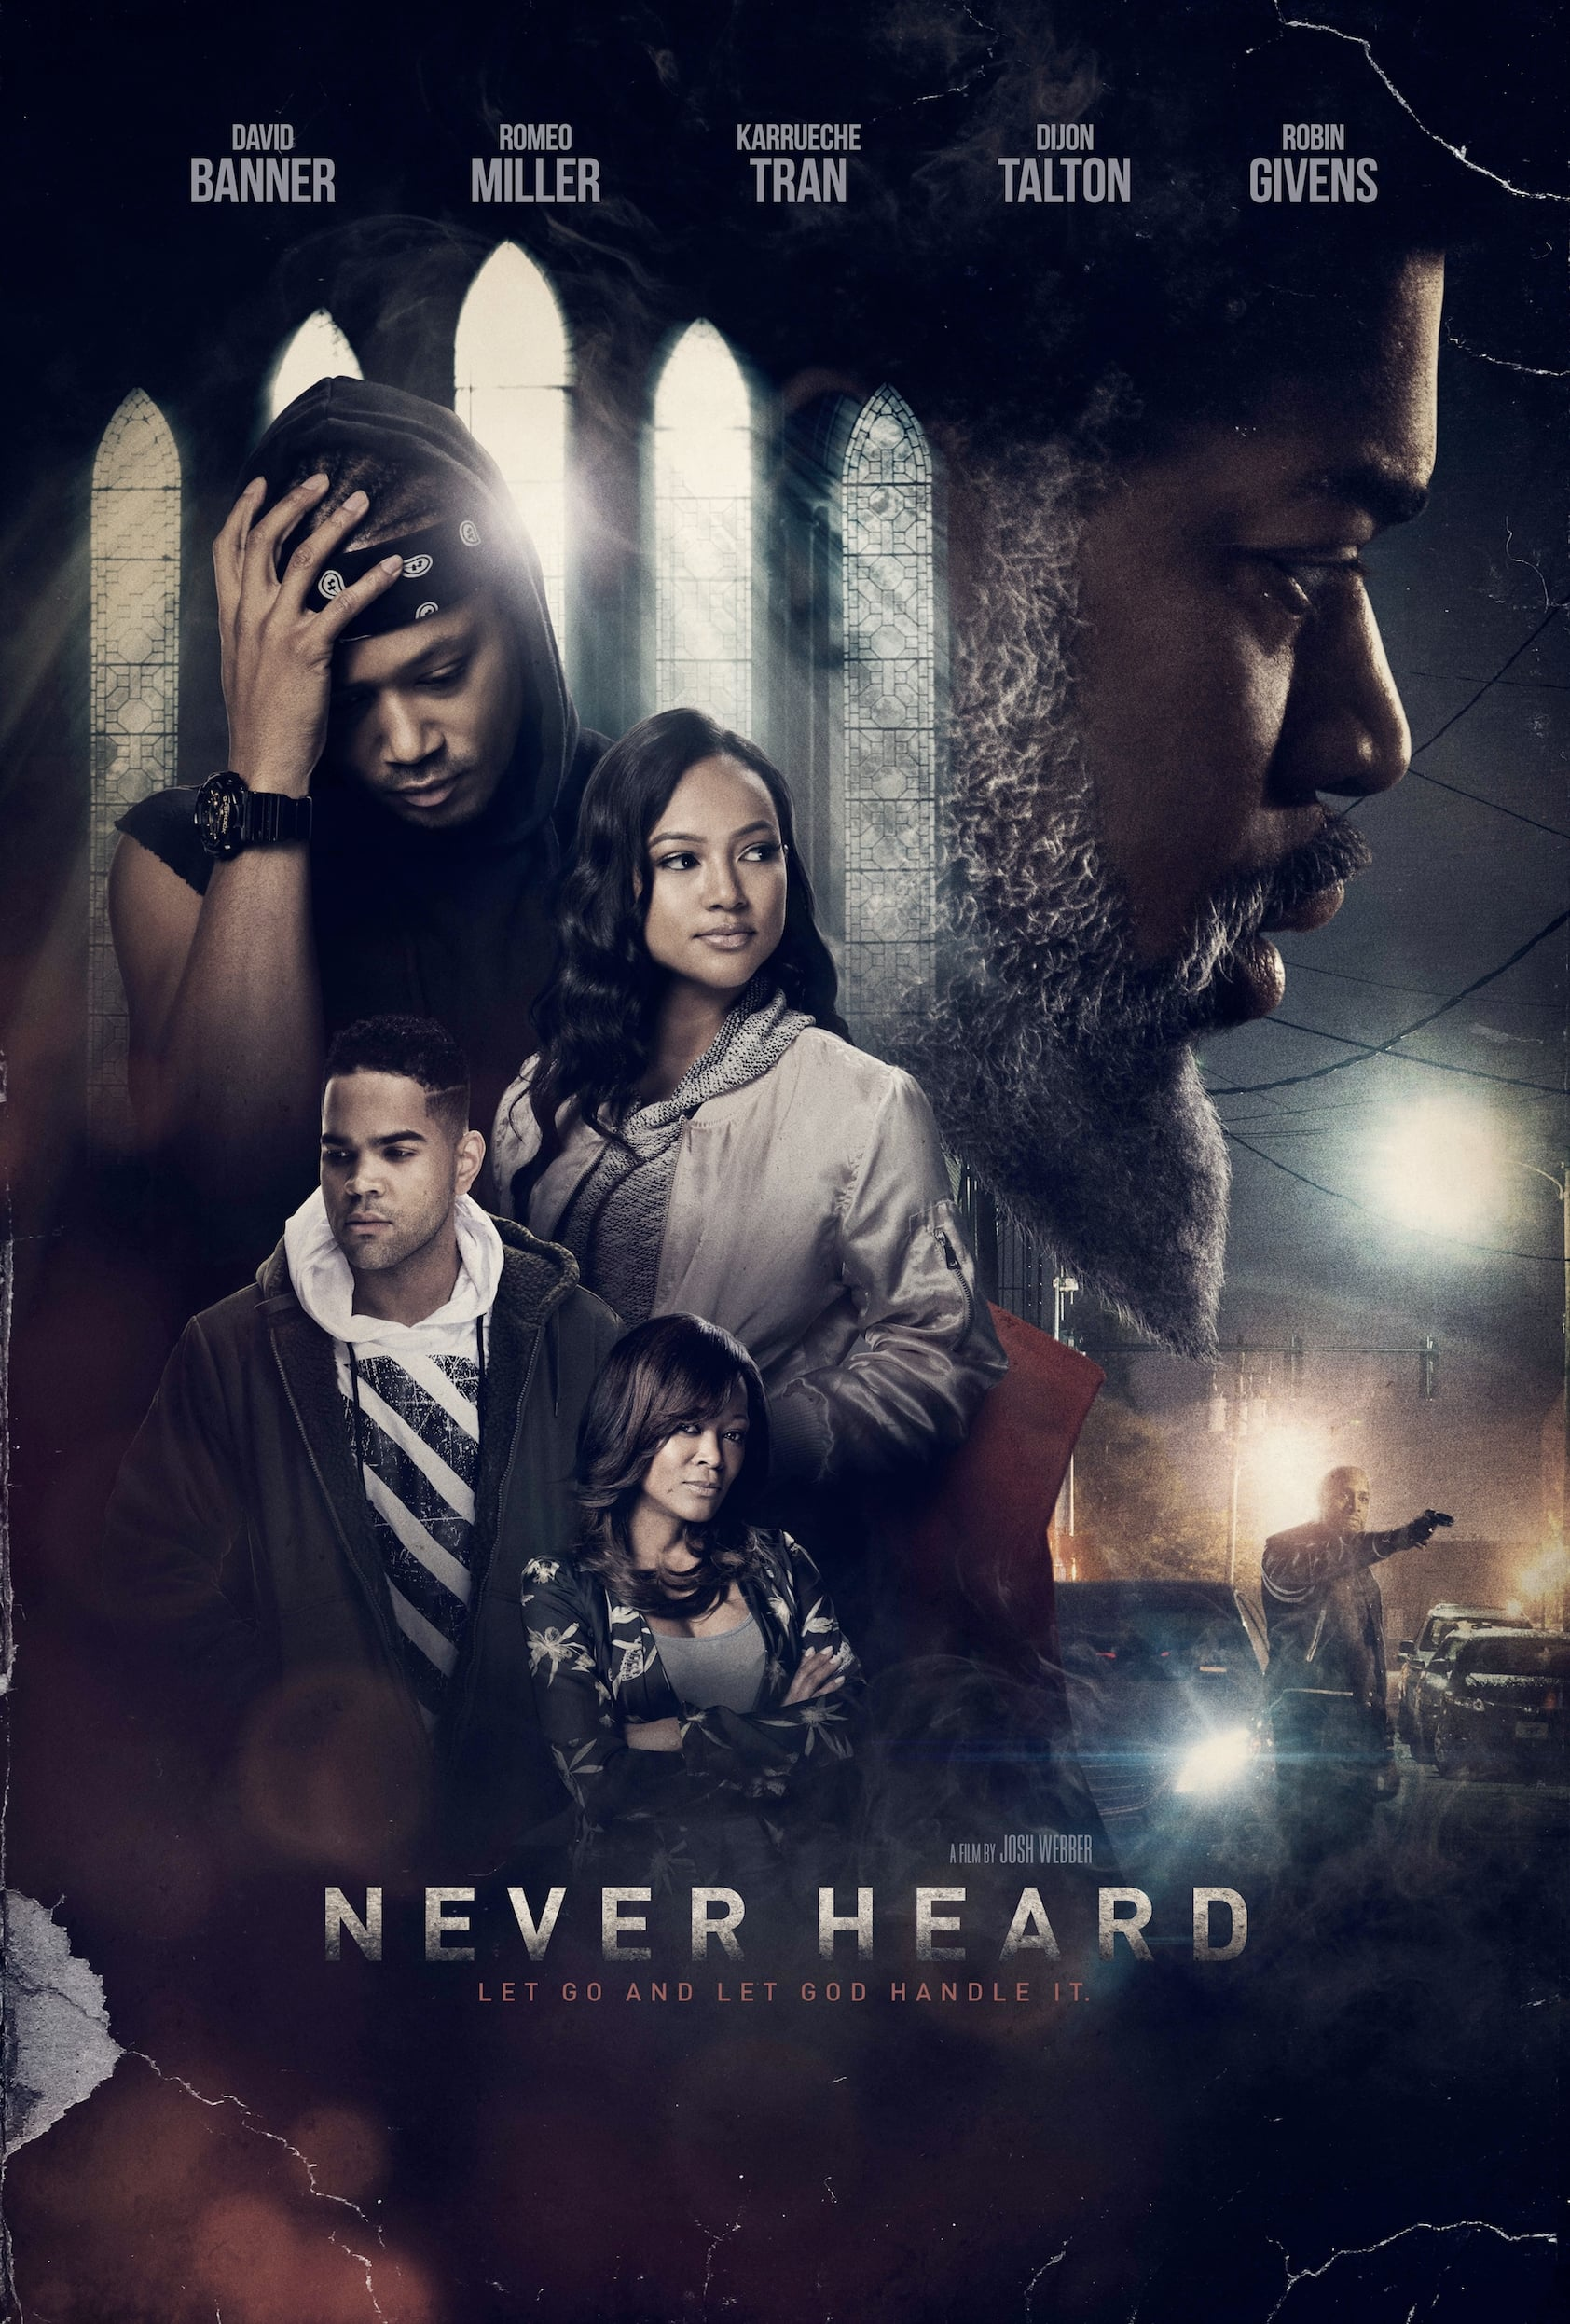 image for NEVER HEARD